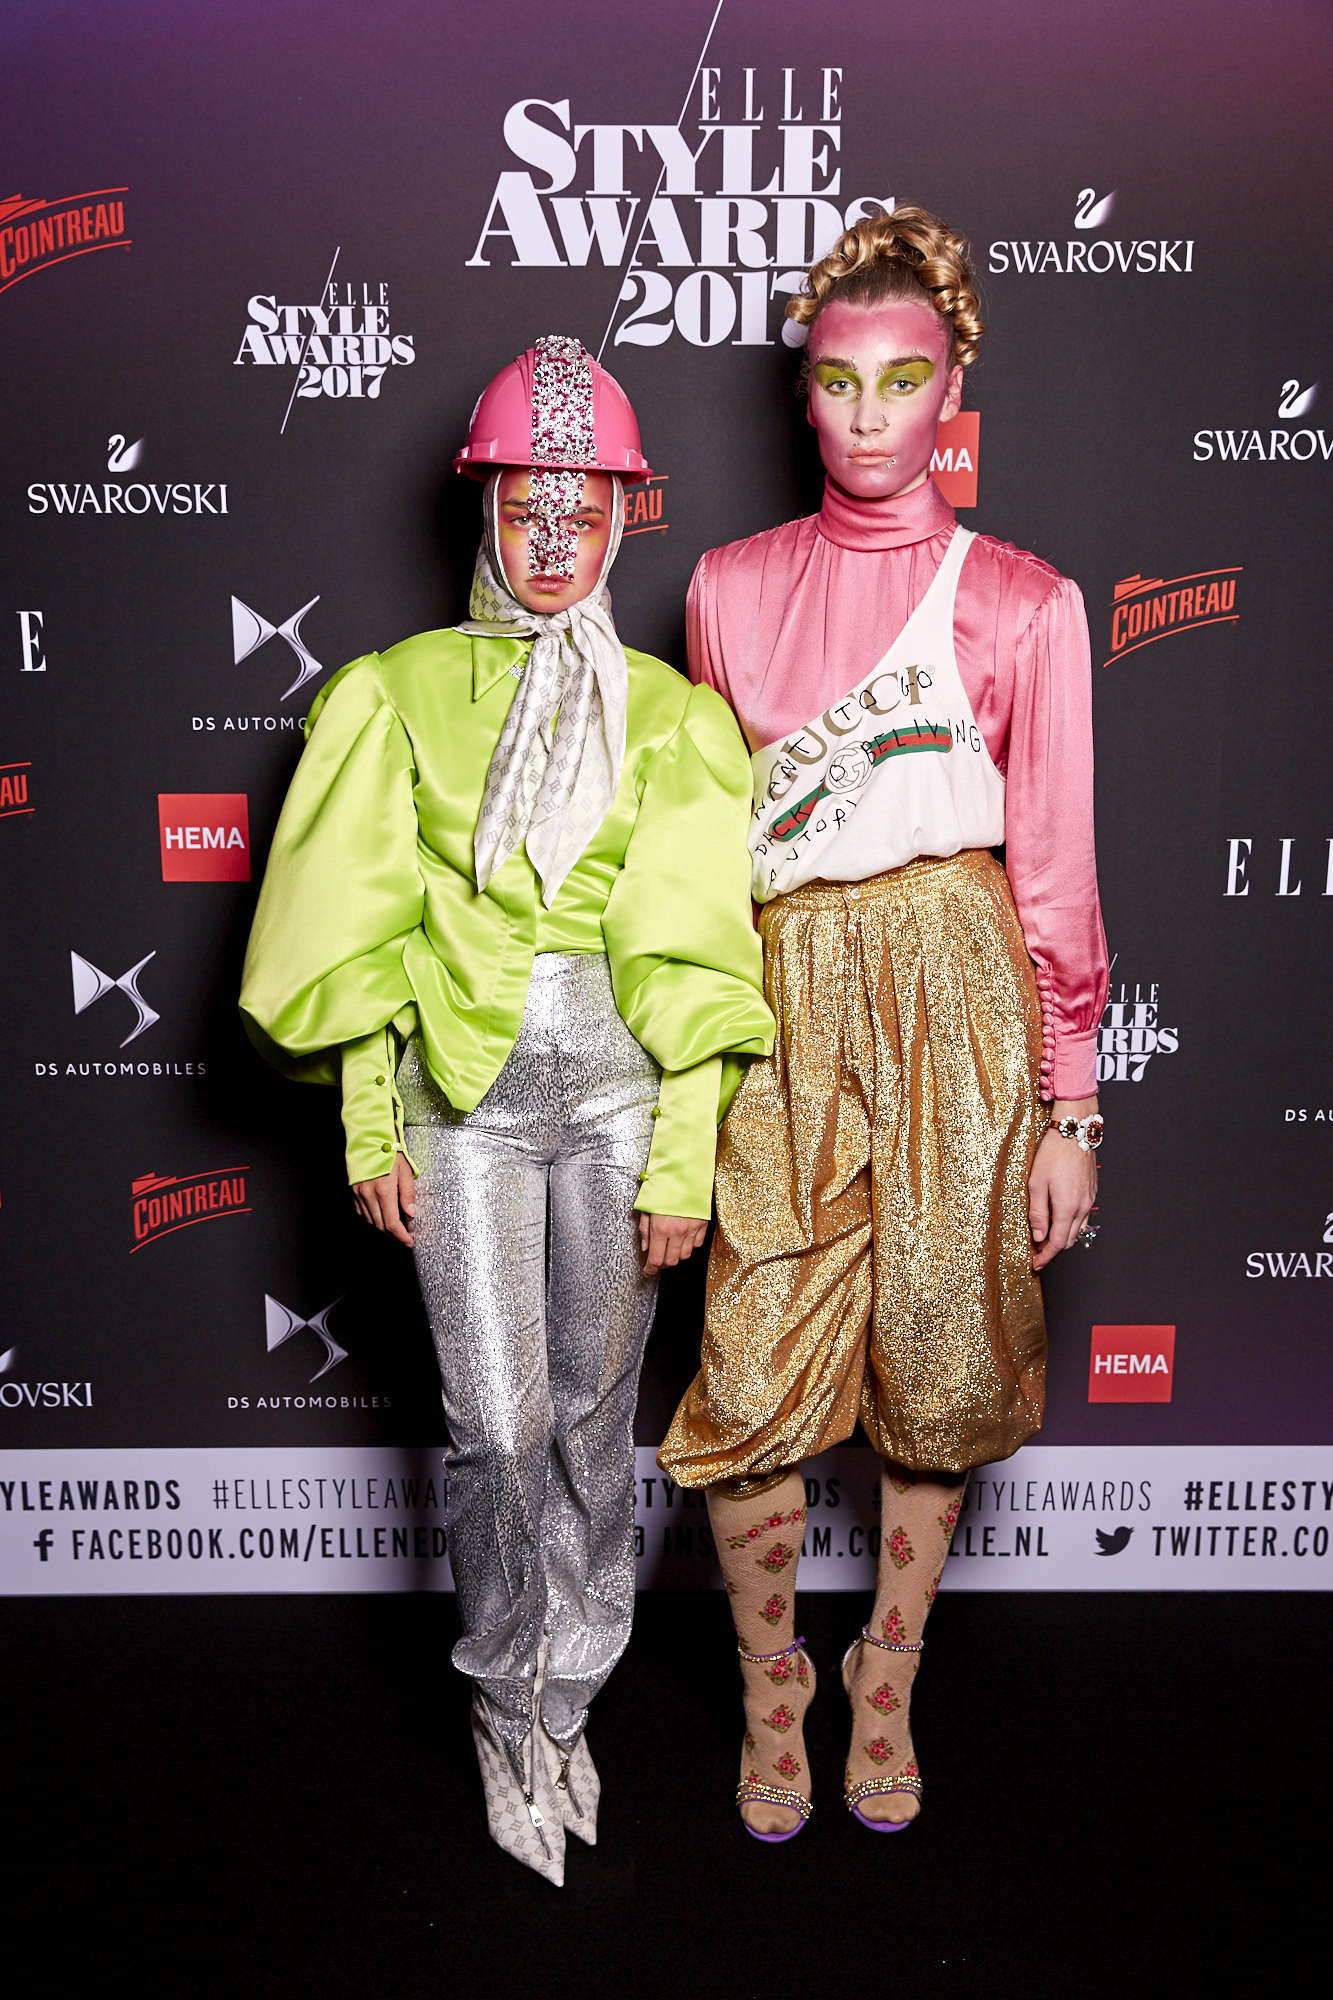 Assistant styling Indi Roma Voss for Elle style awards 2017 Hostessen The Amazing Agency